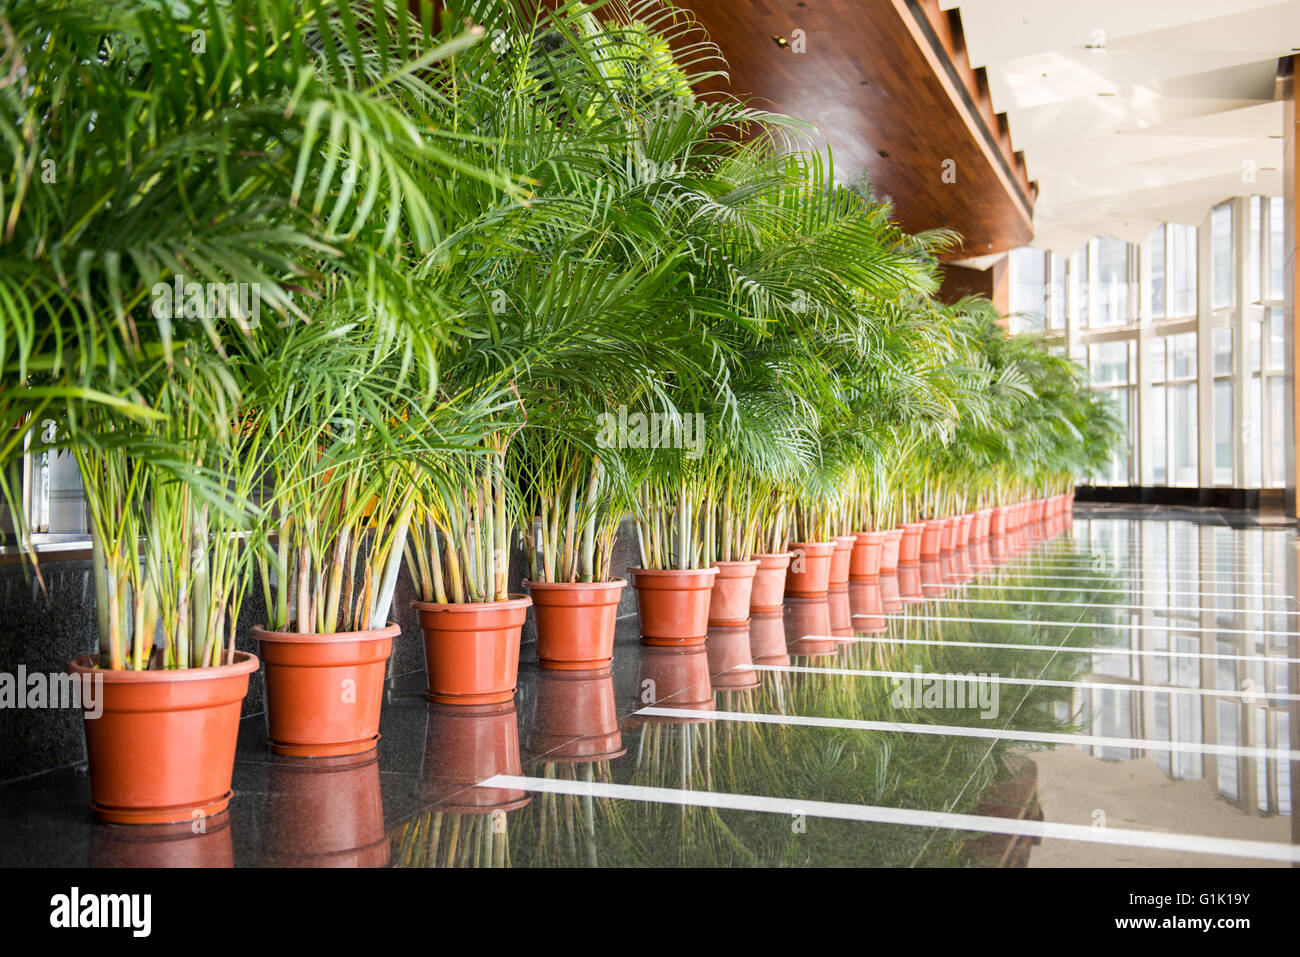 Great Long Row Of Green Tall Plants In Red Pots Inside A Building Lobby